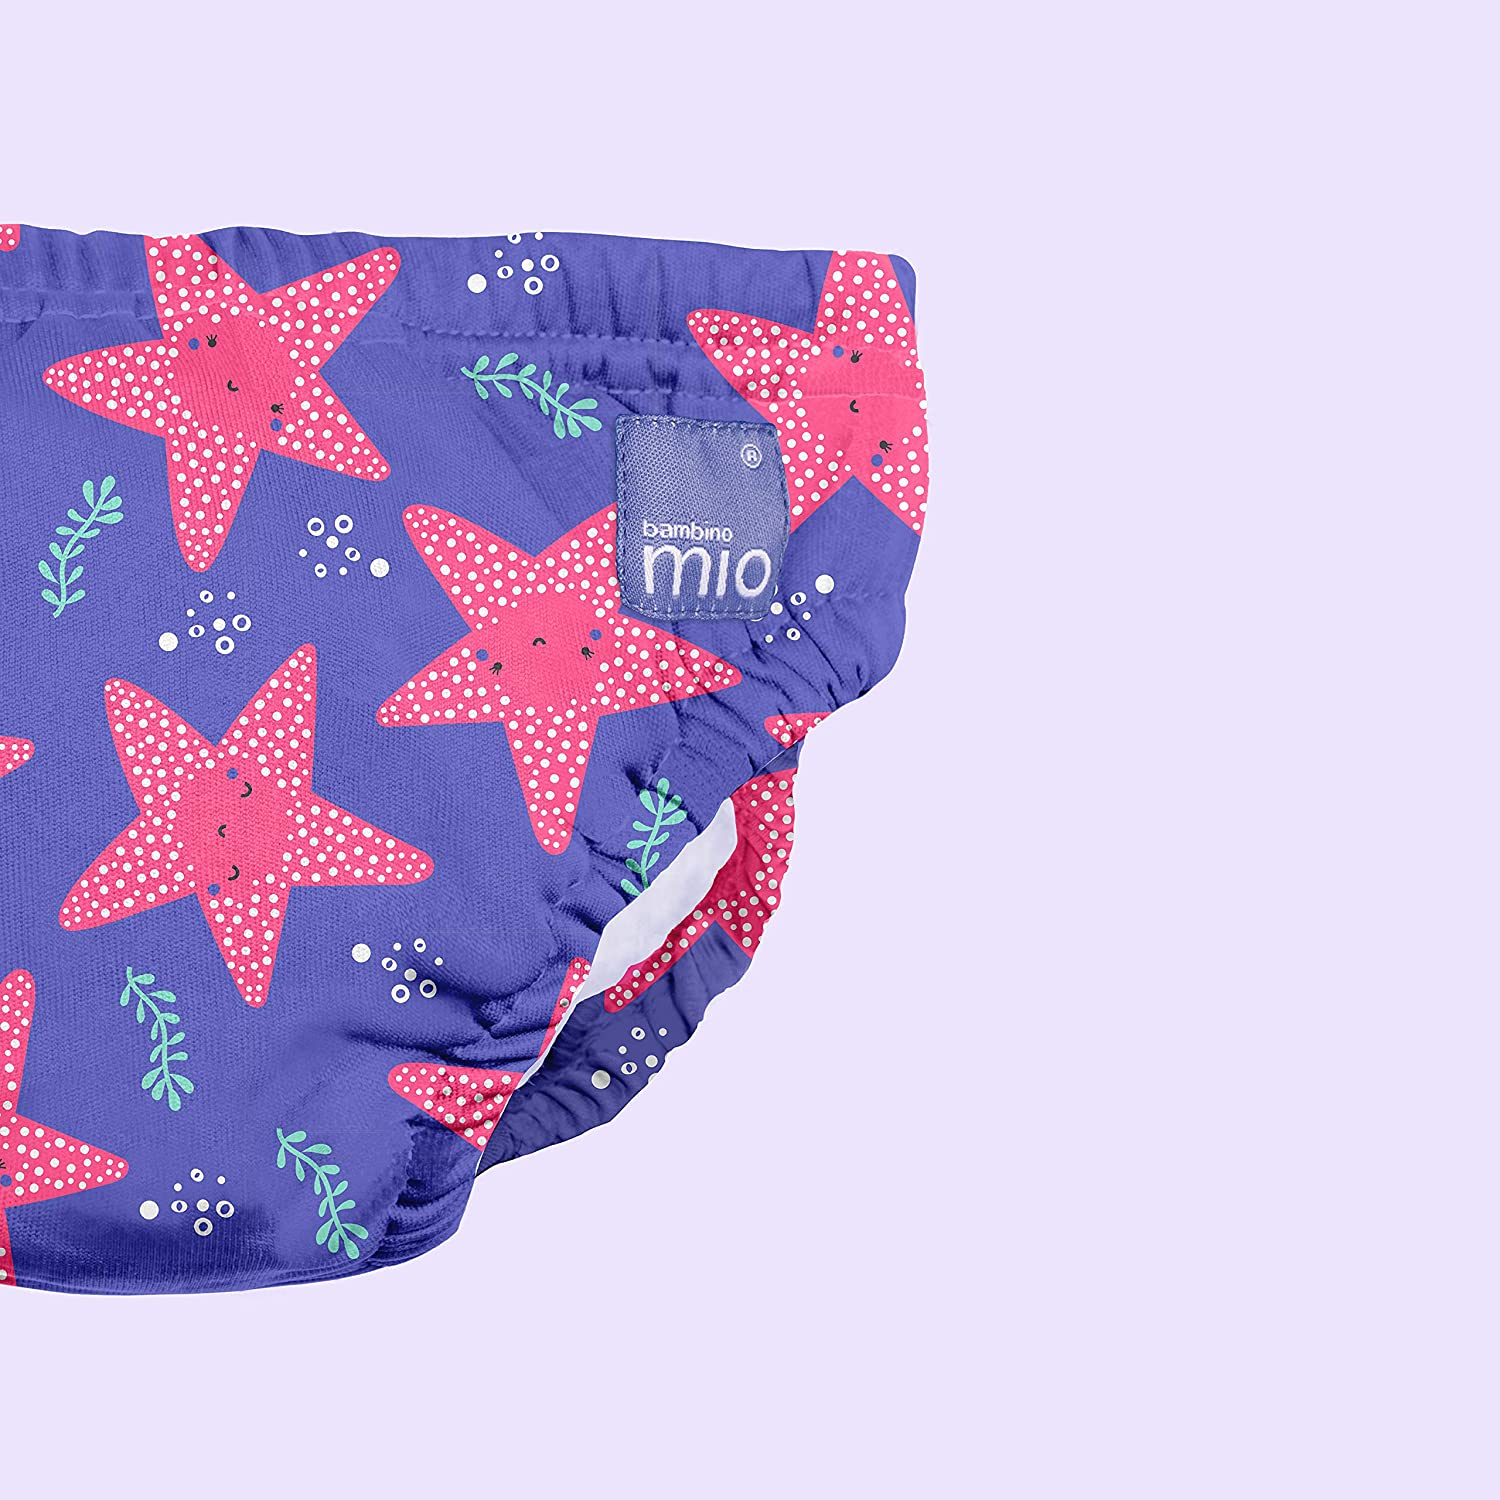 Violet 2 Years+ Extra Large 3 Pack Bambino Mio Reusable Swim Diaper